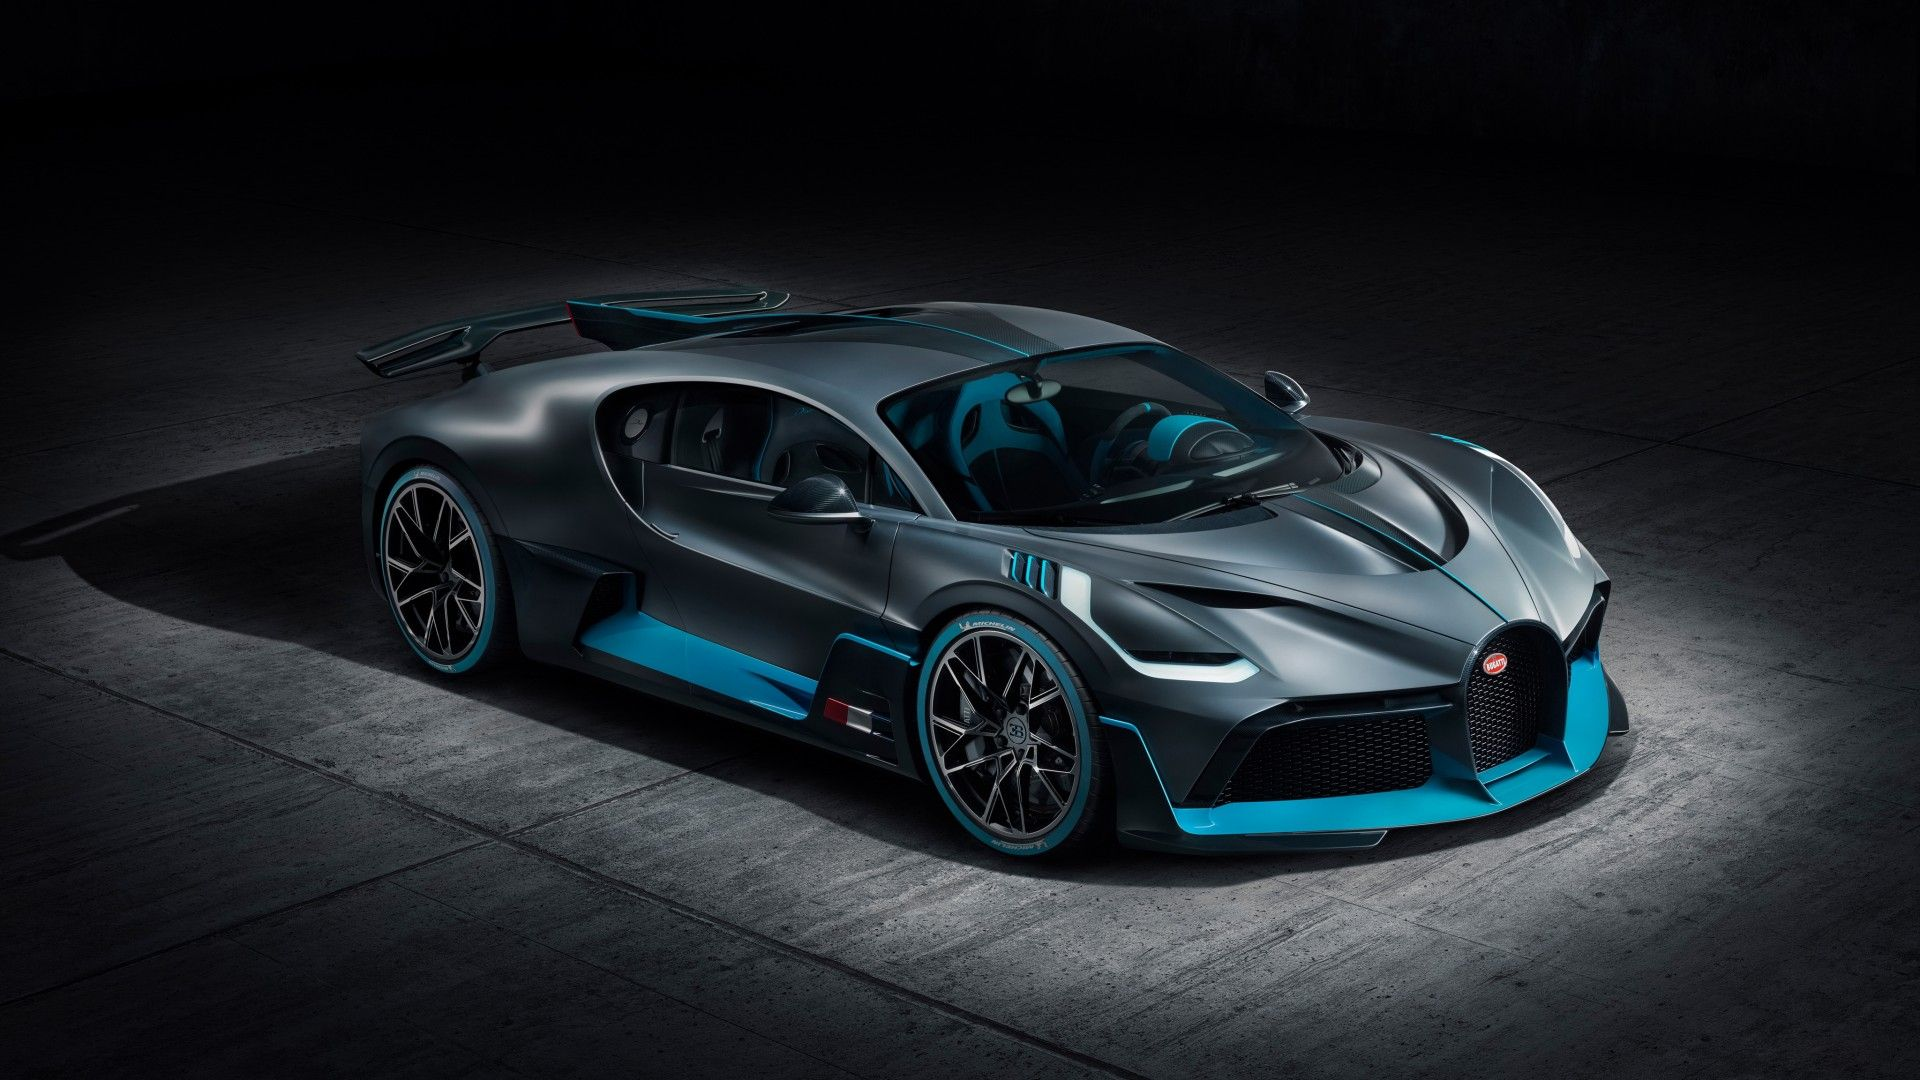 New Bugatti Divo Desktop Wallpaper 1920x1080 Super Sport Cars Bugatti Cars Super Cars